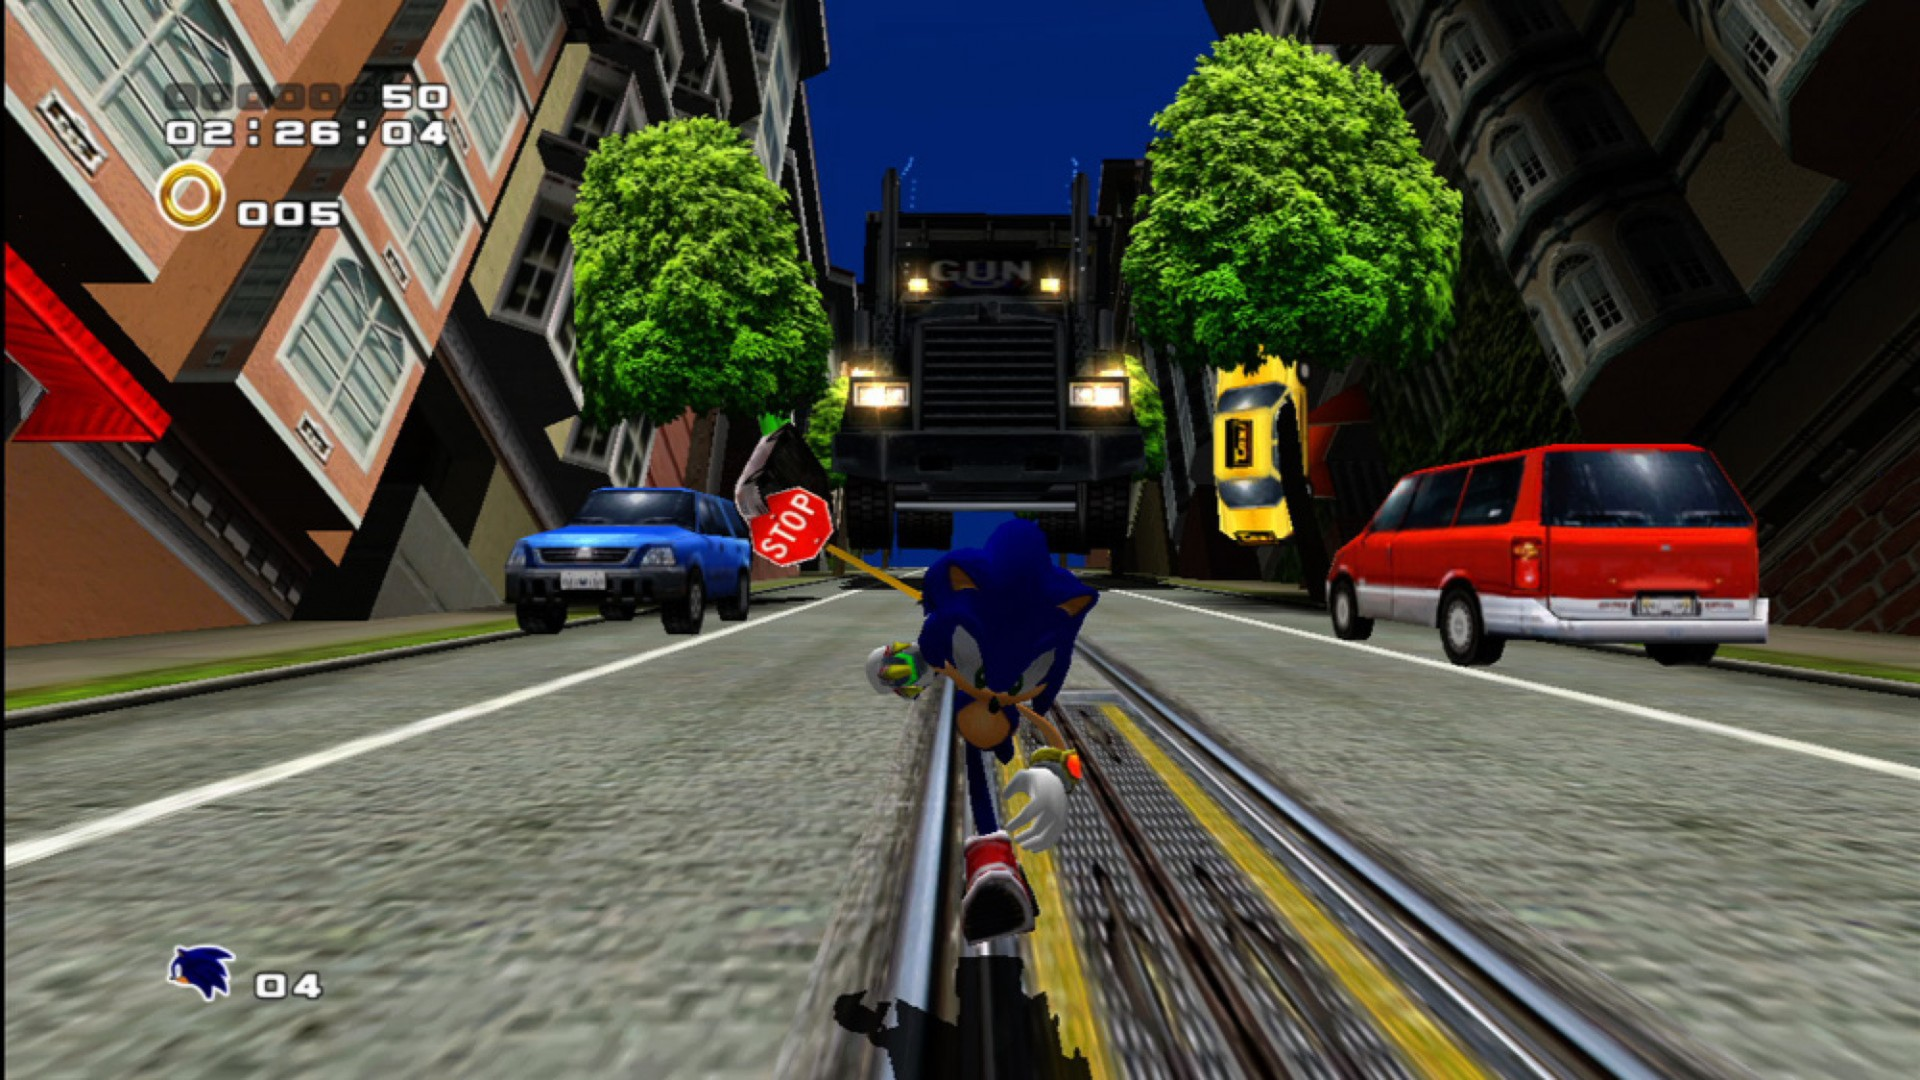 Sonic adventure 2 pc game saves egt 18x08